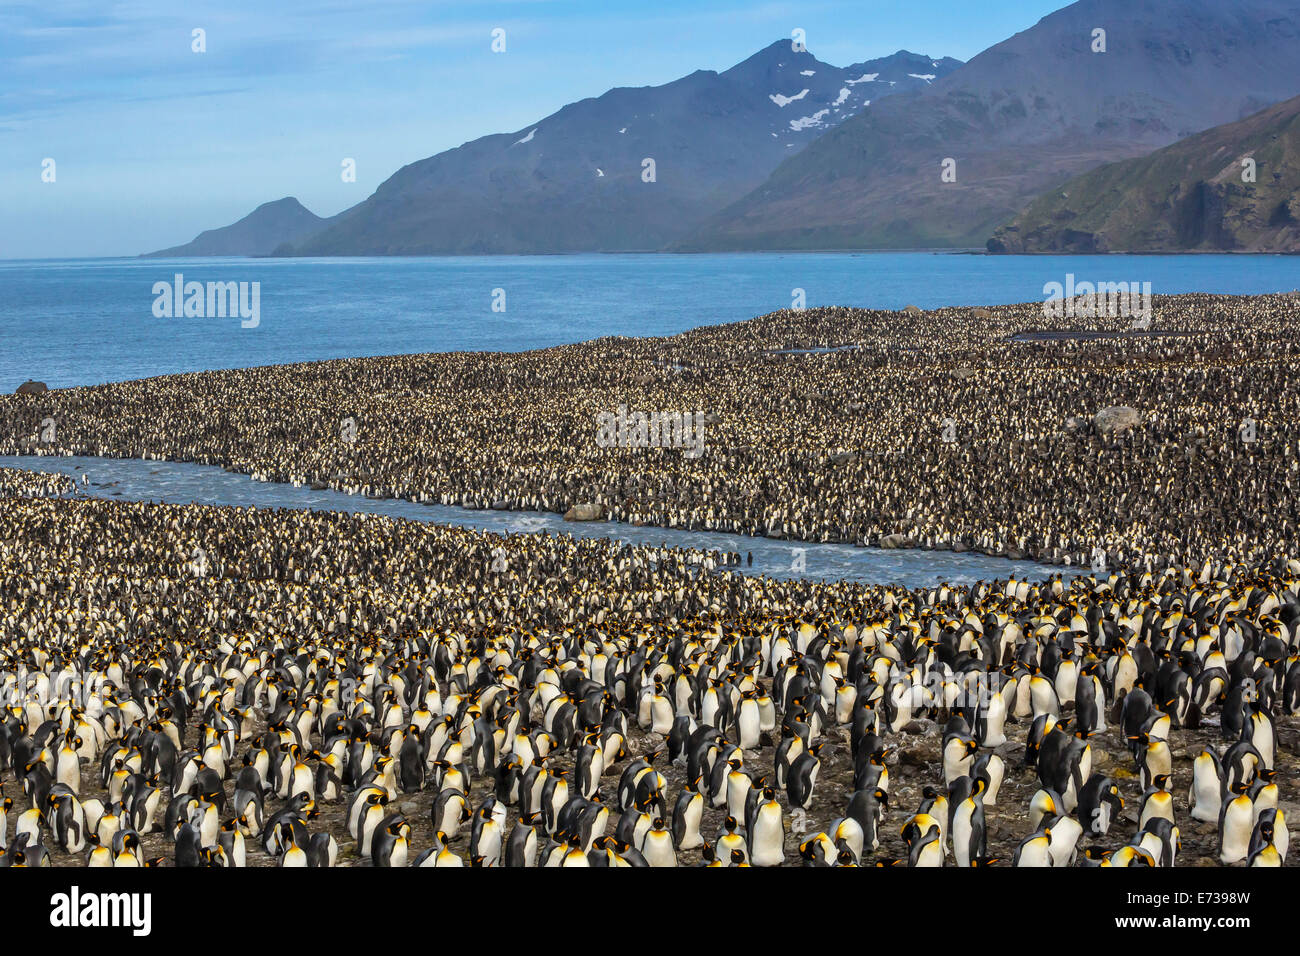 King penguin (Aptenodytes patagonicus) breeding colony at St. Andrews Bay, South Georgia, UK Overseas Protectorate Stock Photo